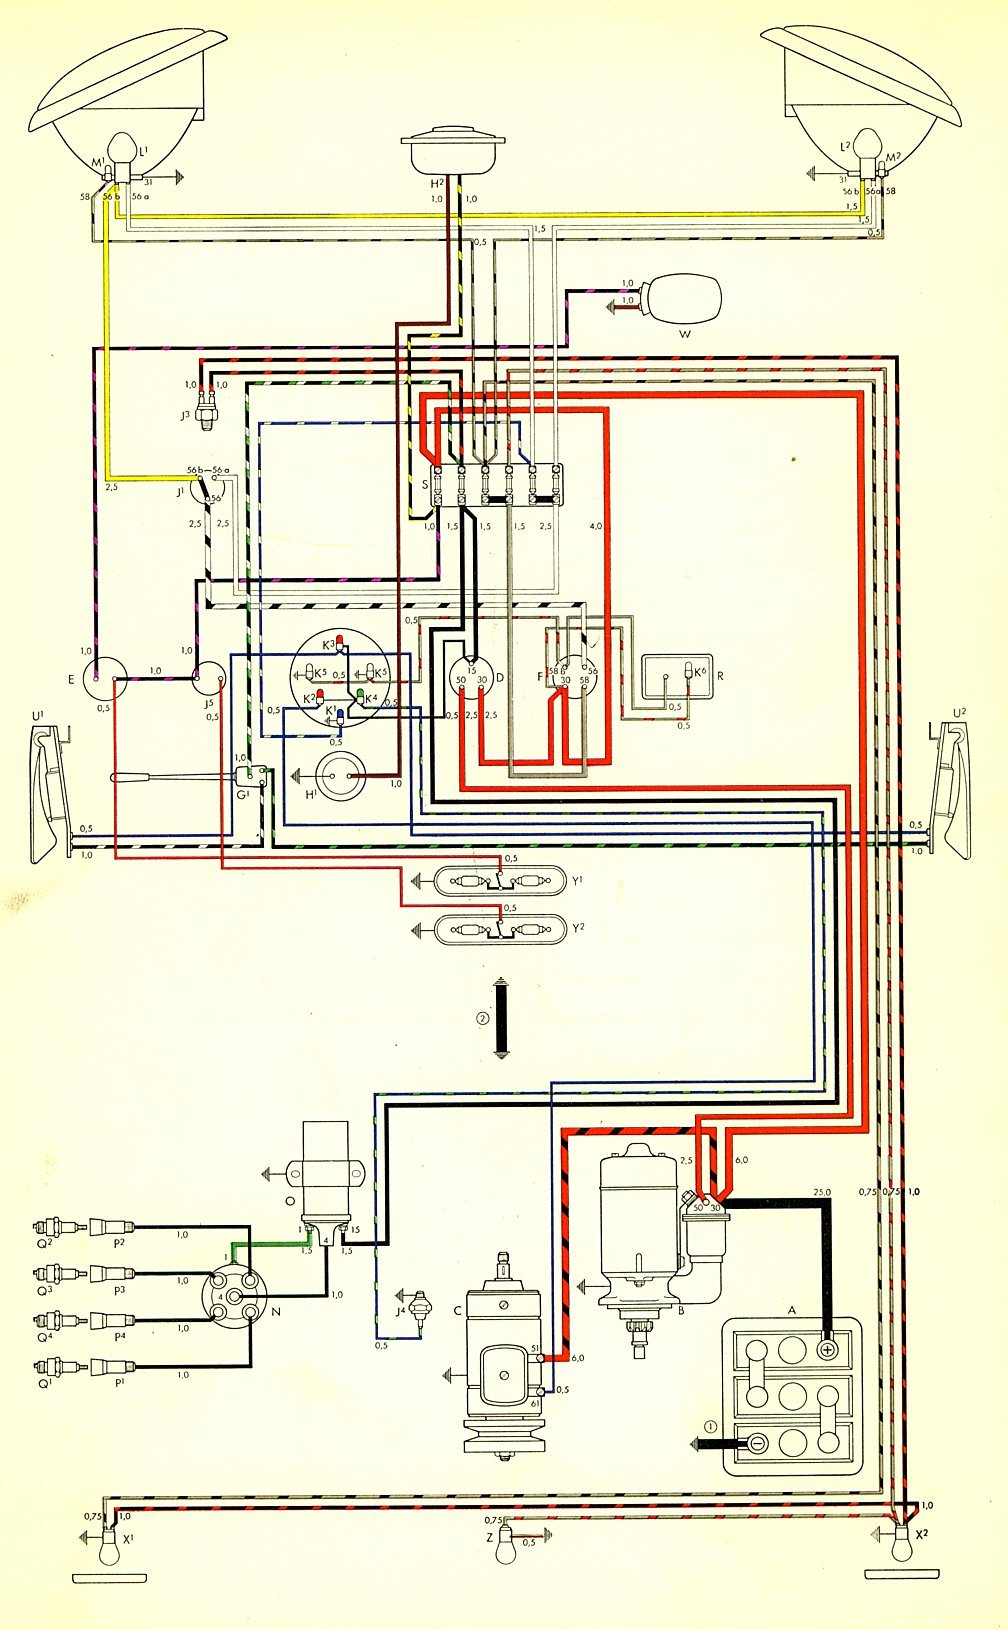 bus_59 thesamba com type 2 wiring diagrams 1970 chevrolet c10 wiring diagram at honlapkeszites.co